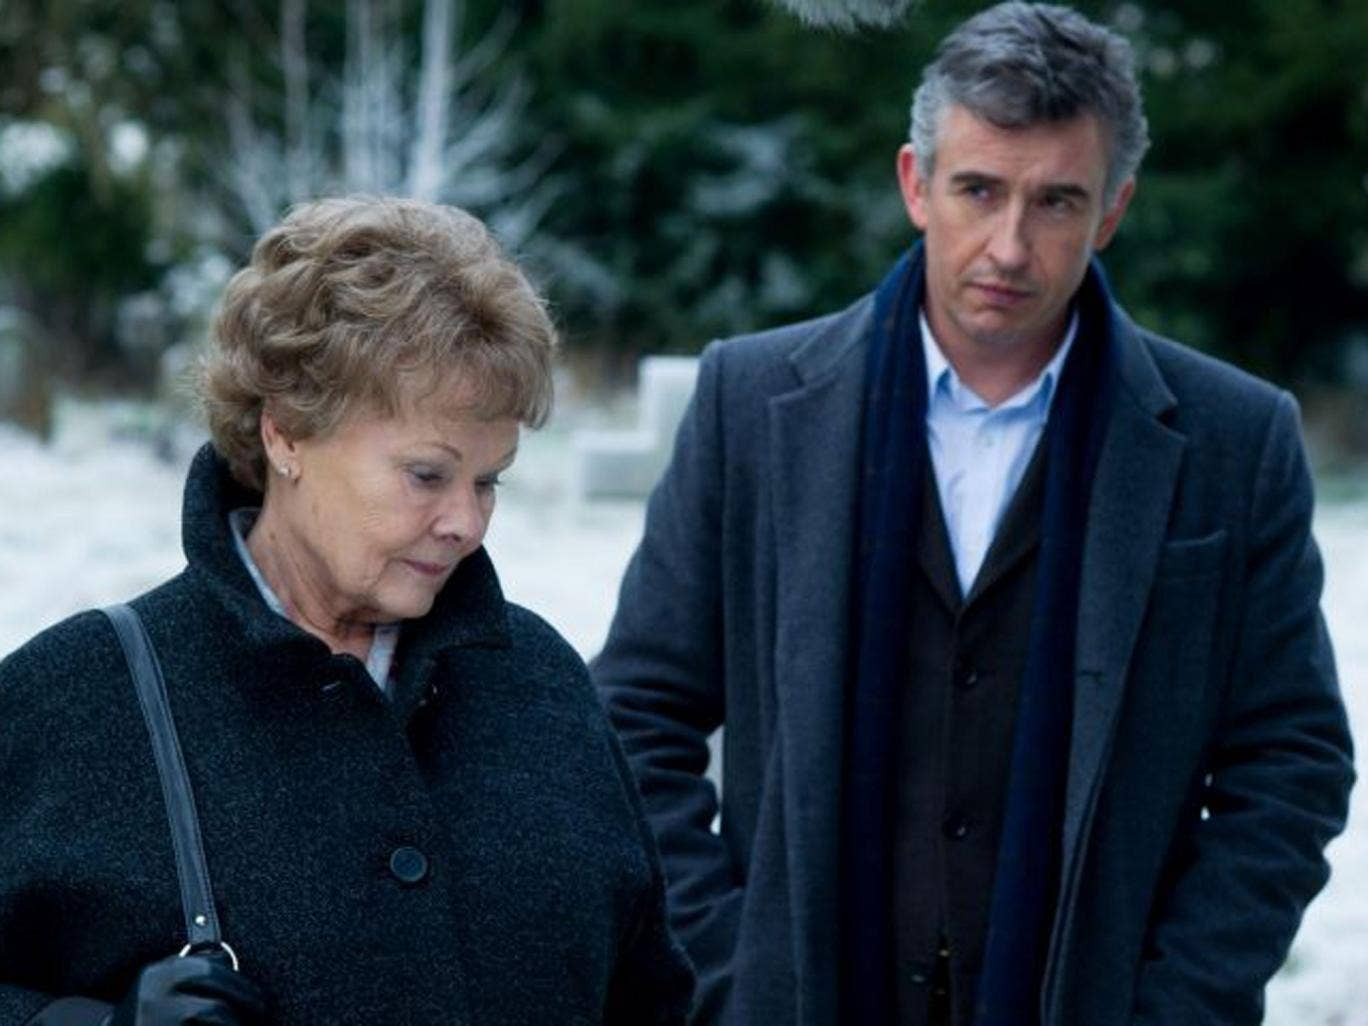 A rare success: Dame Judi Dench and Steve Coogan in Philomena